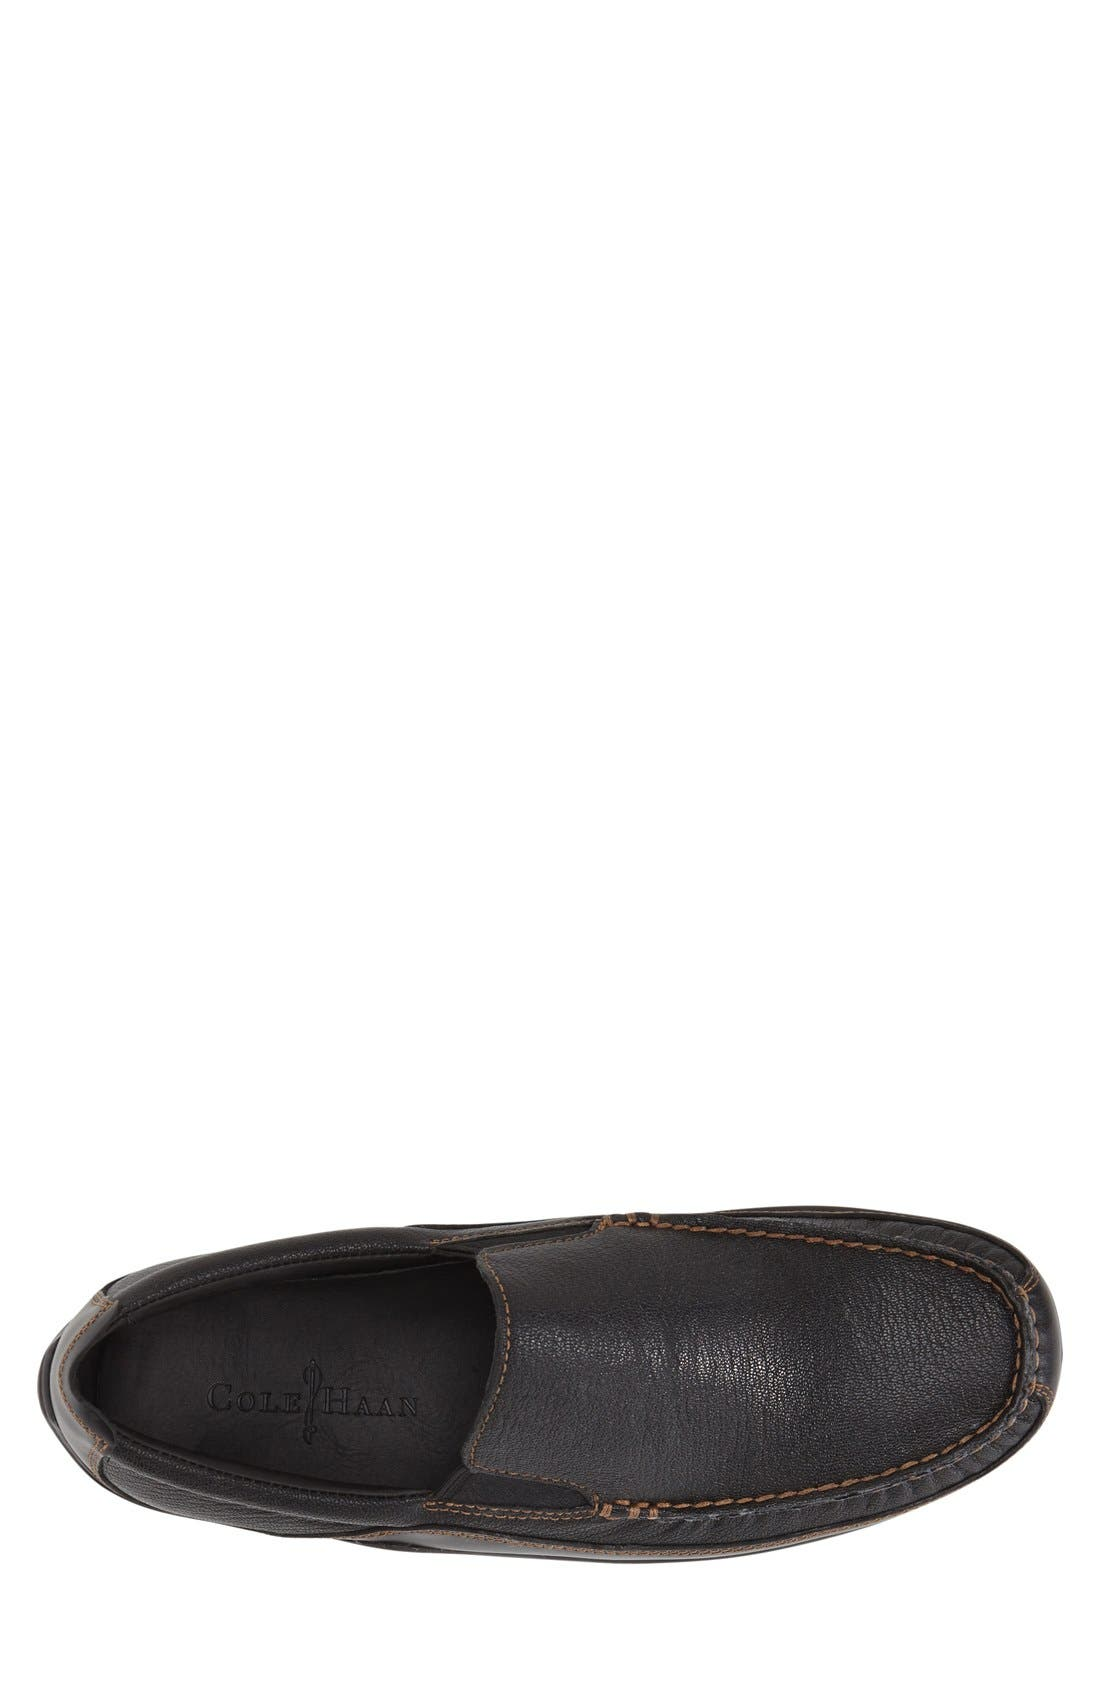 'Tucker Venetian' Loafer,                             Alternate thumbnail 2, color,                             BLACK